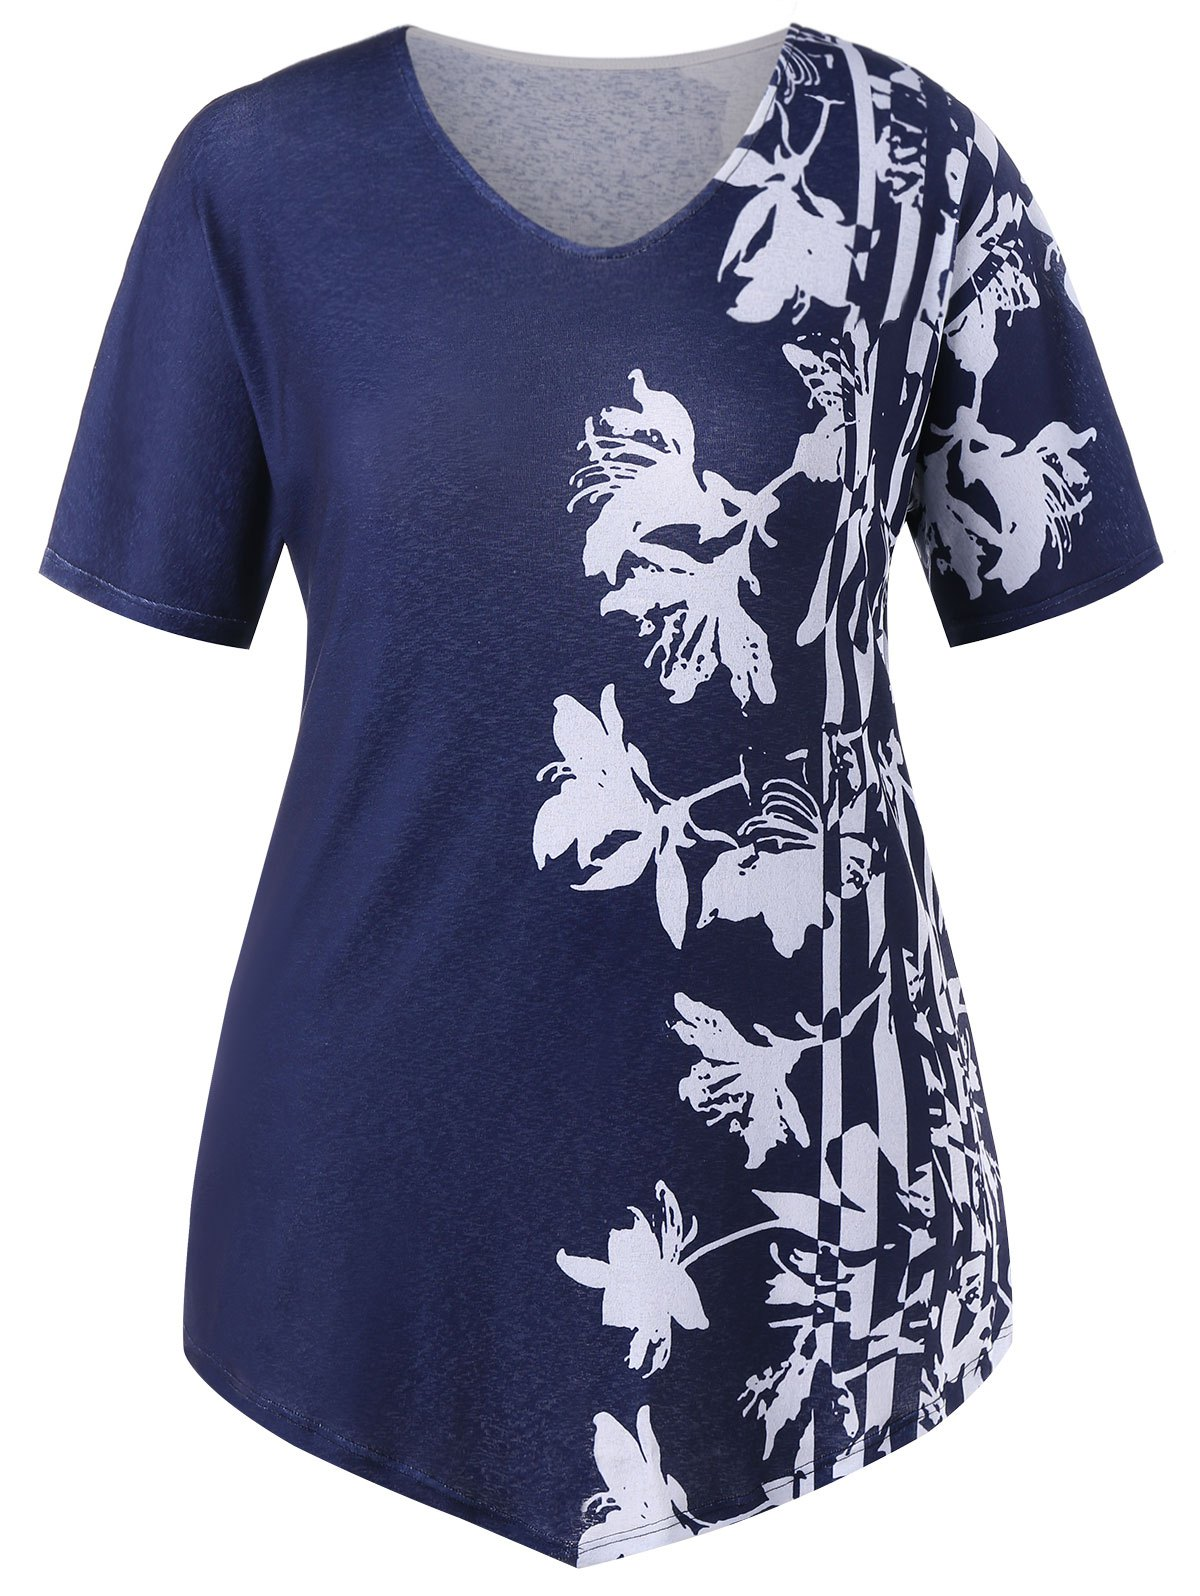 Plus Size Two Tone Floral V Neck T-shirt - BLACK 4X